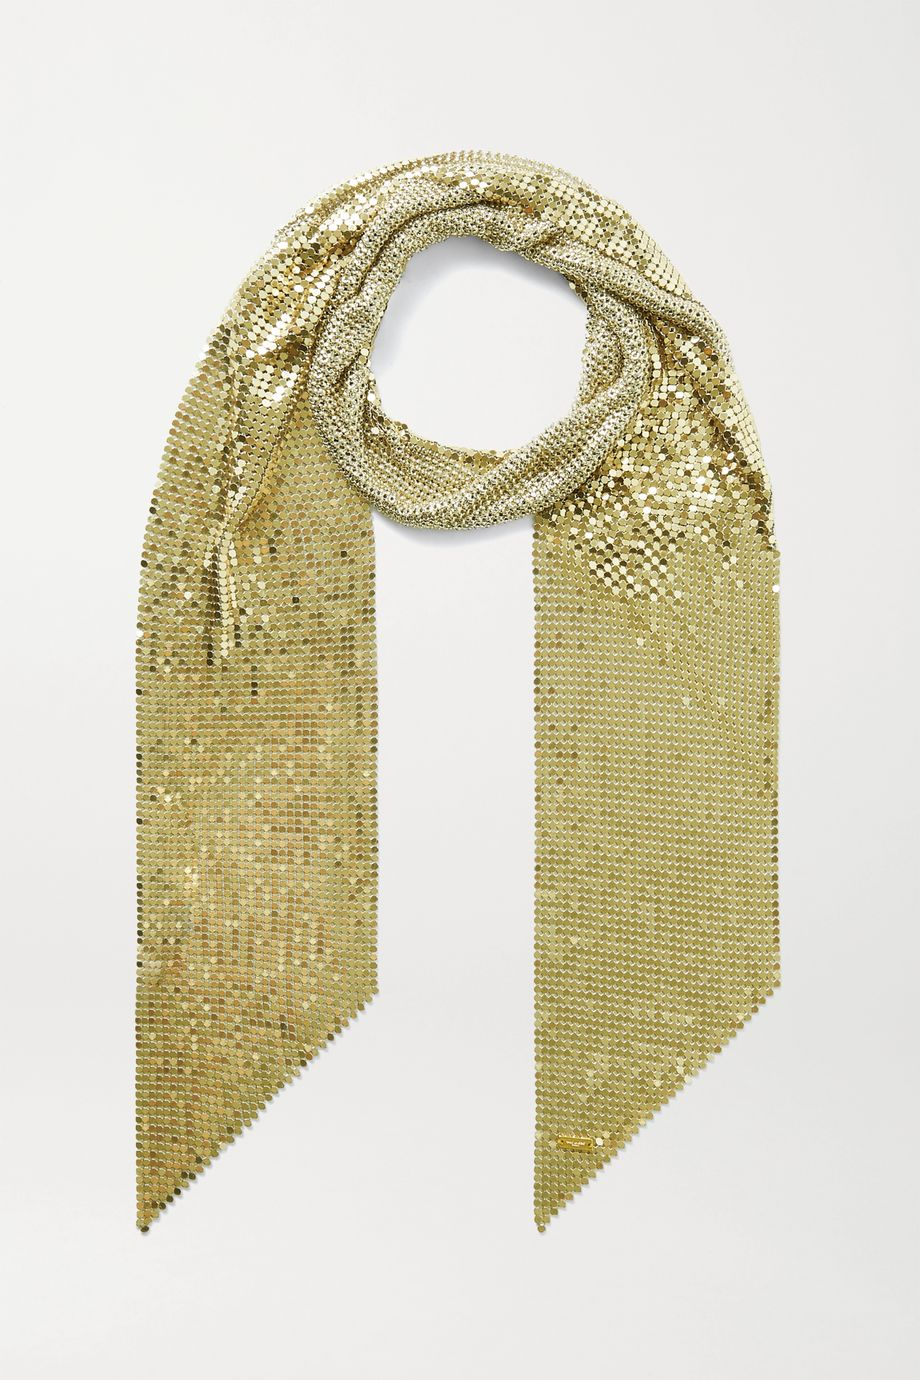 SAINT LAURENT Gold-tone chainmail scarf